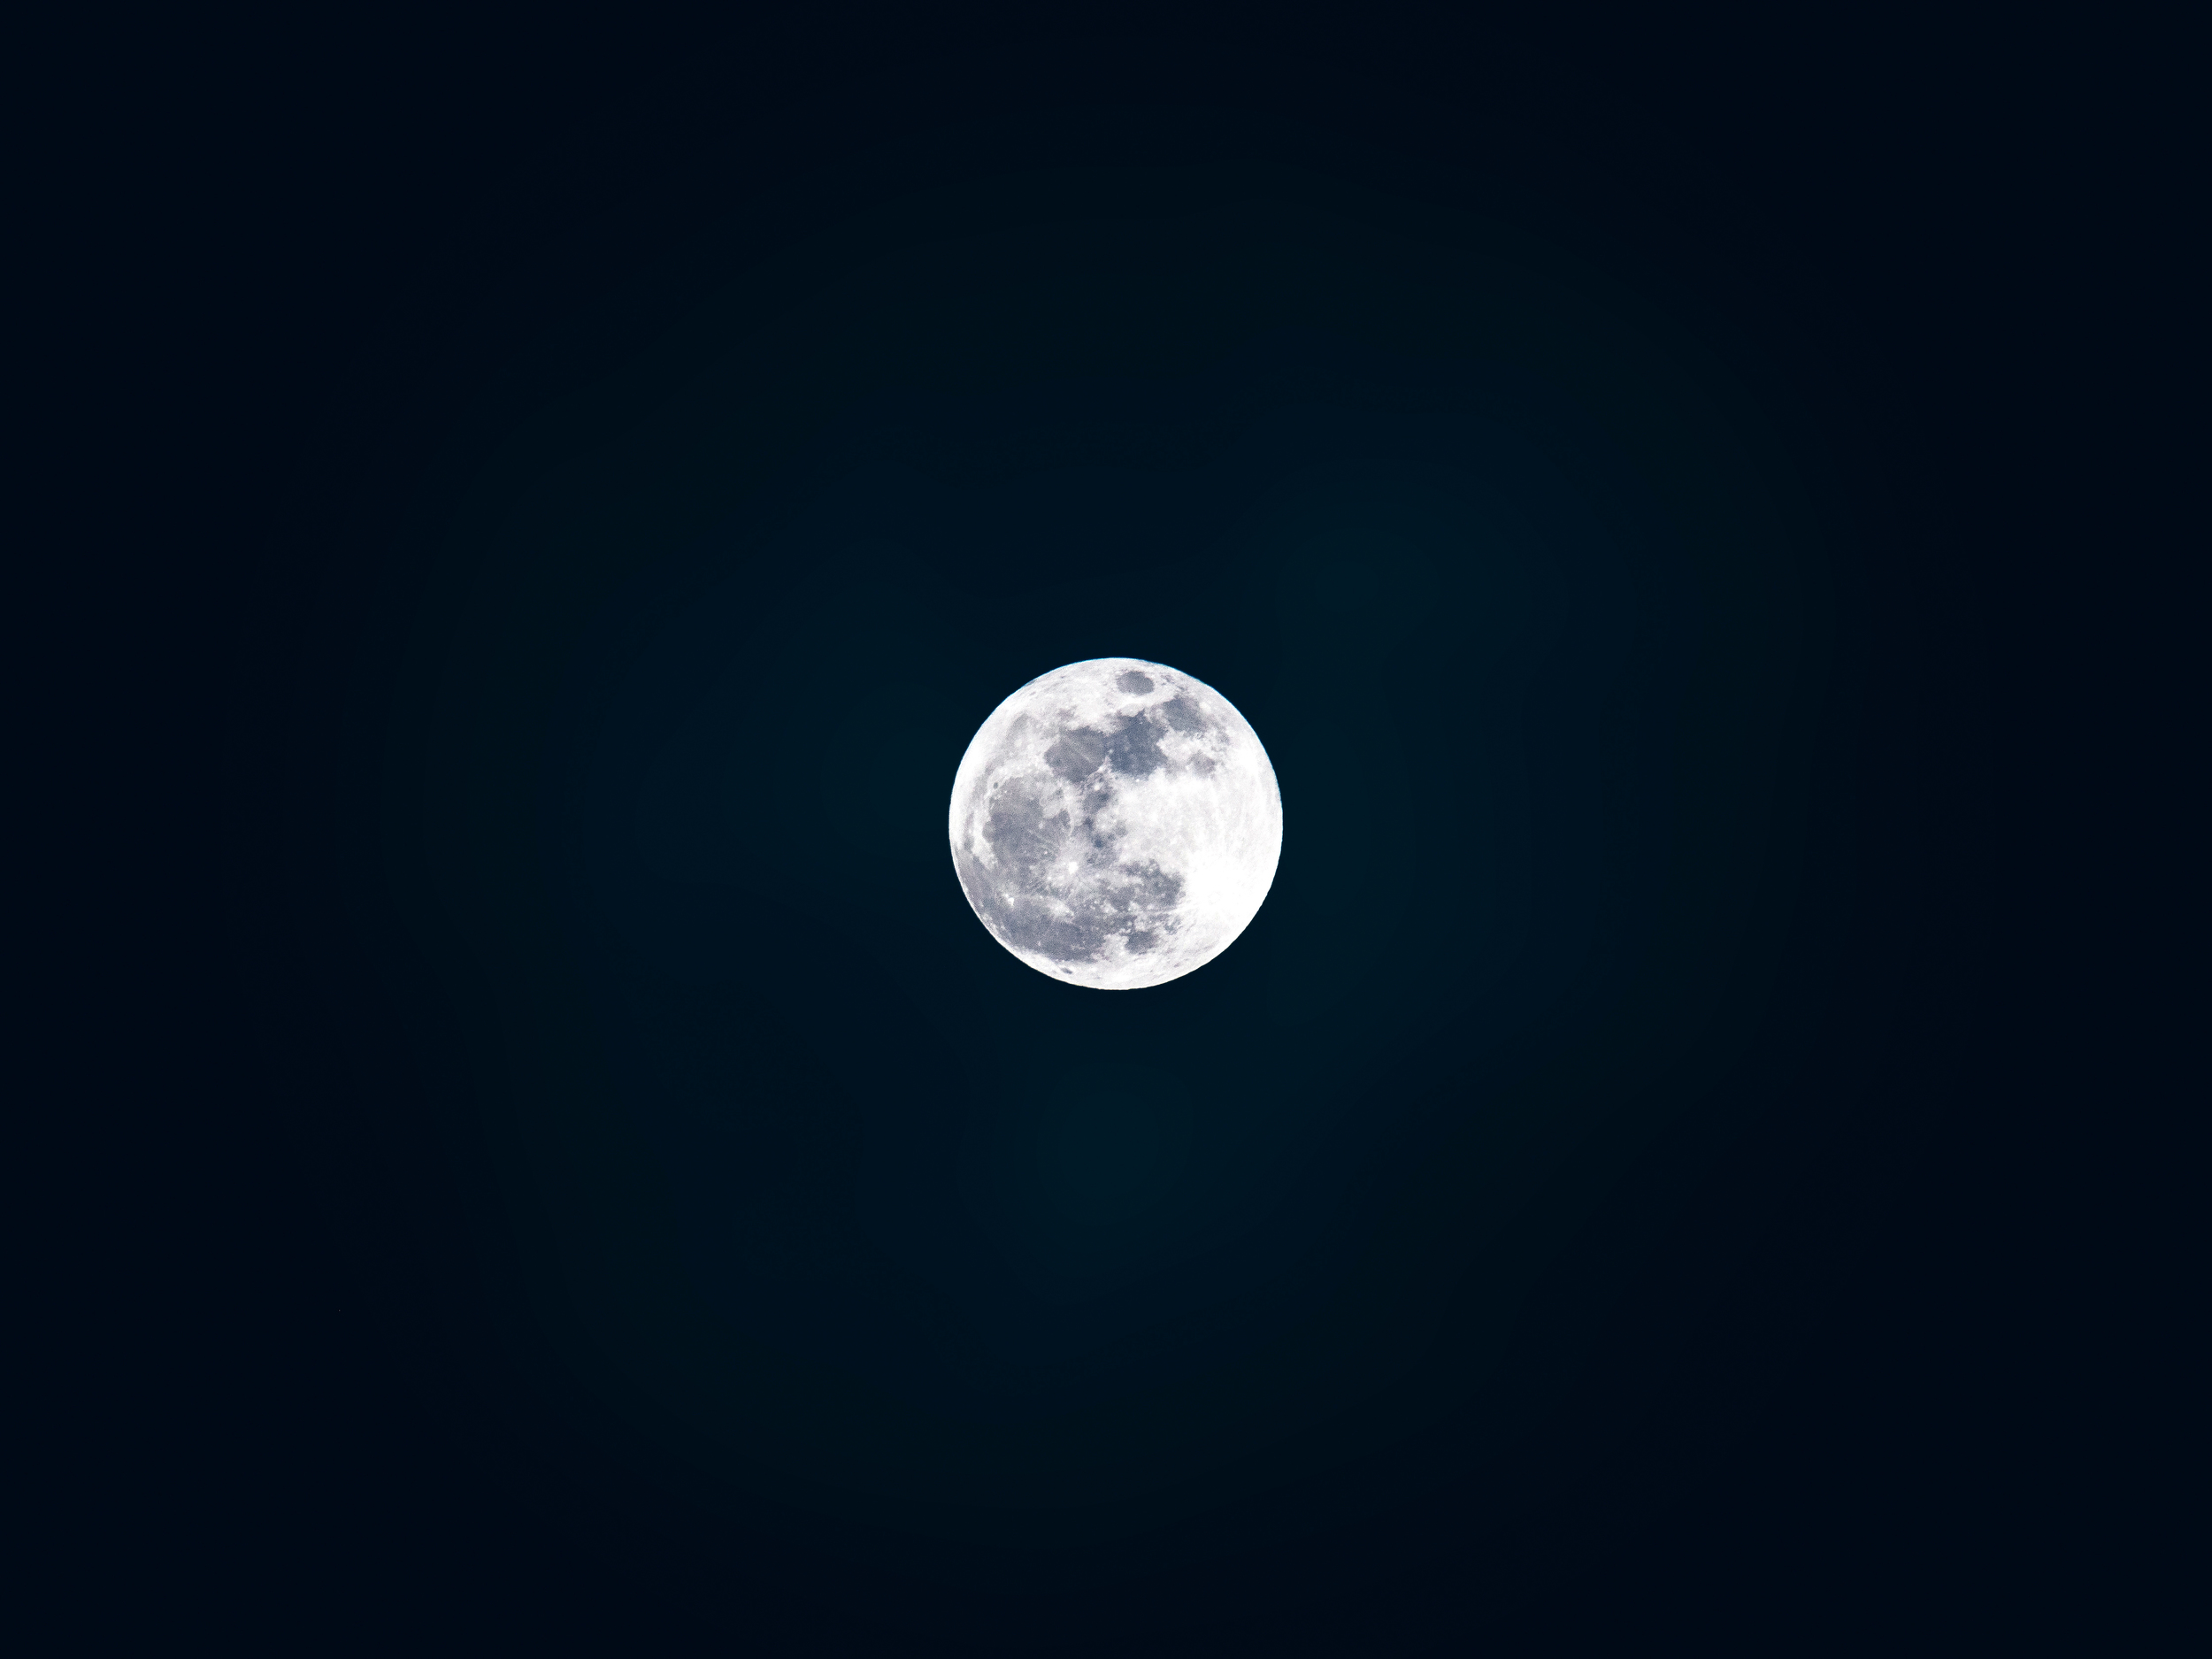 sky facts - moon